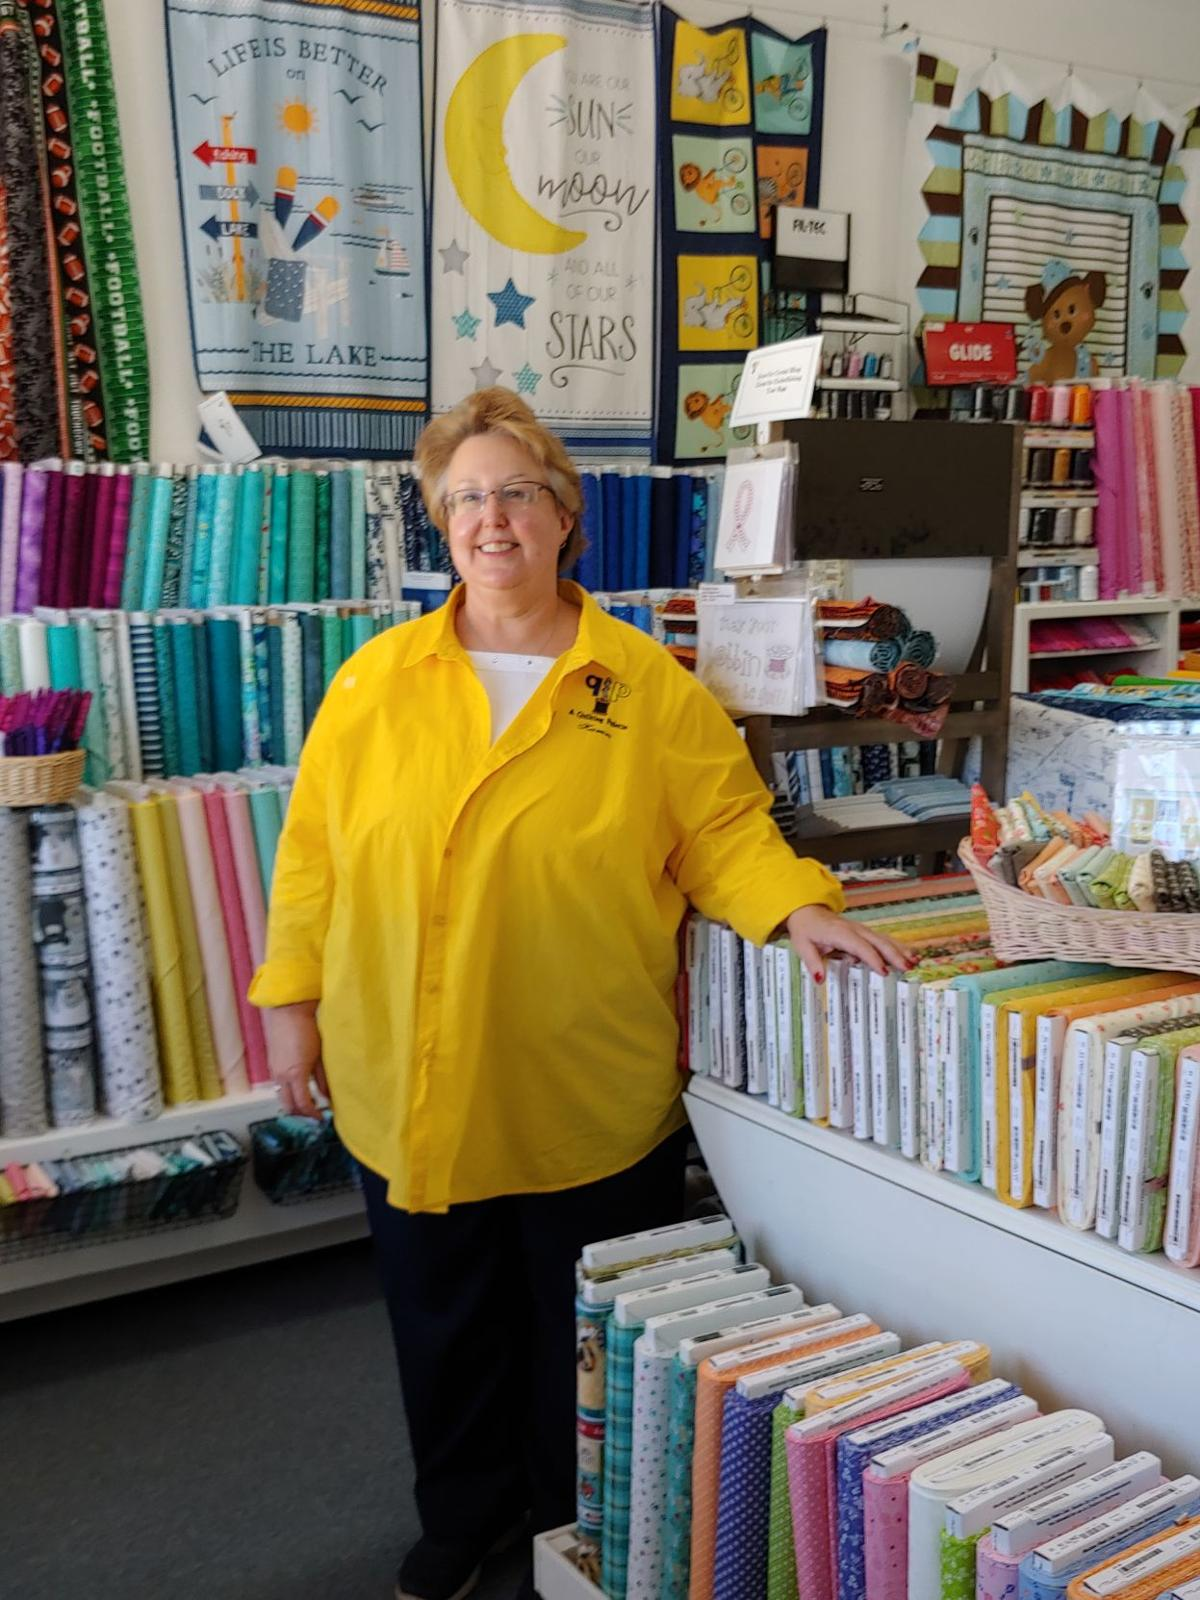 quilting store 2